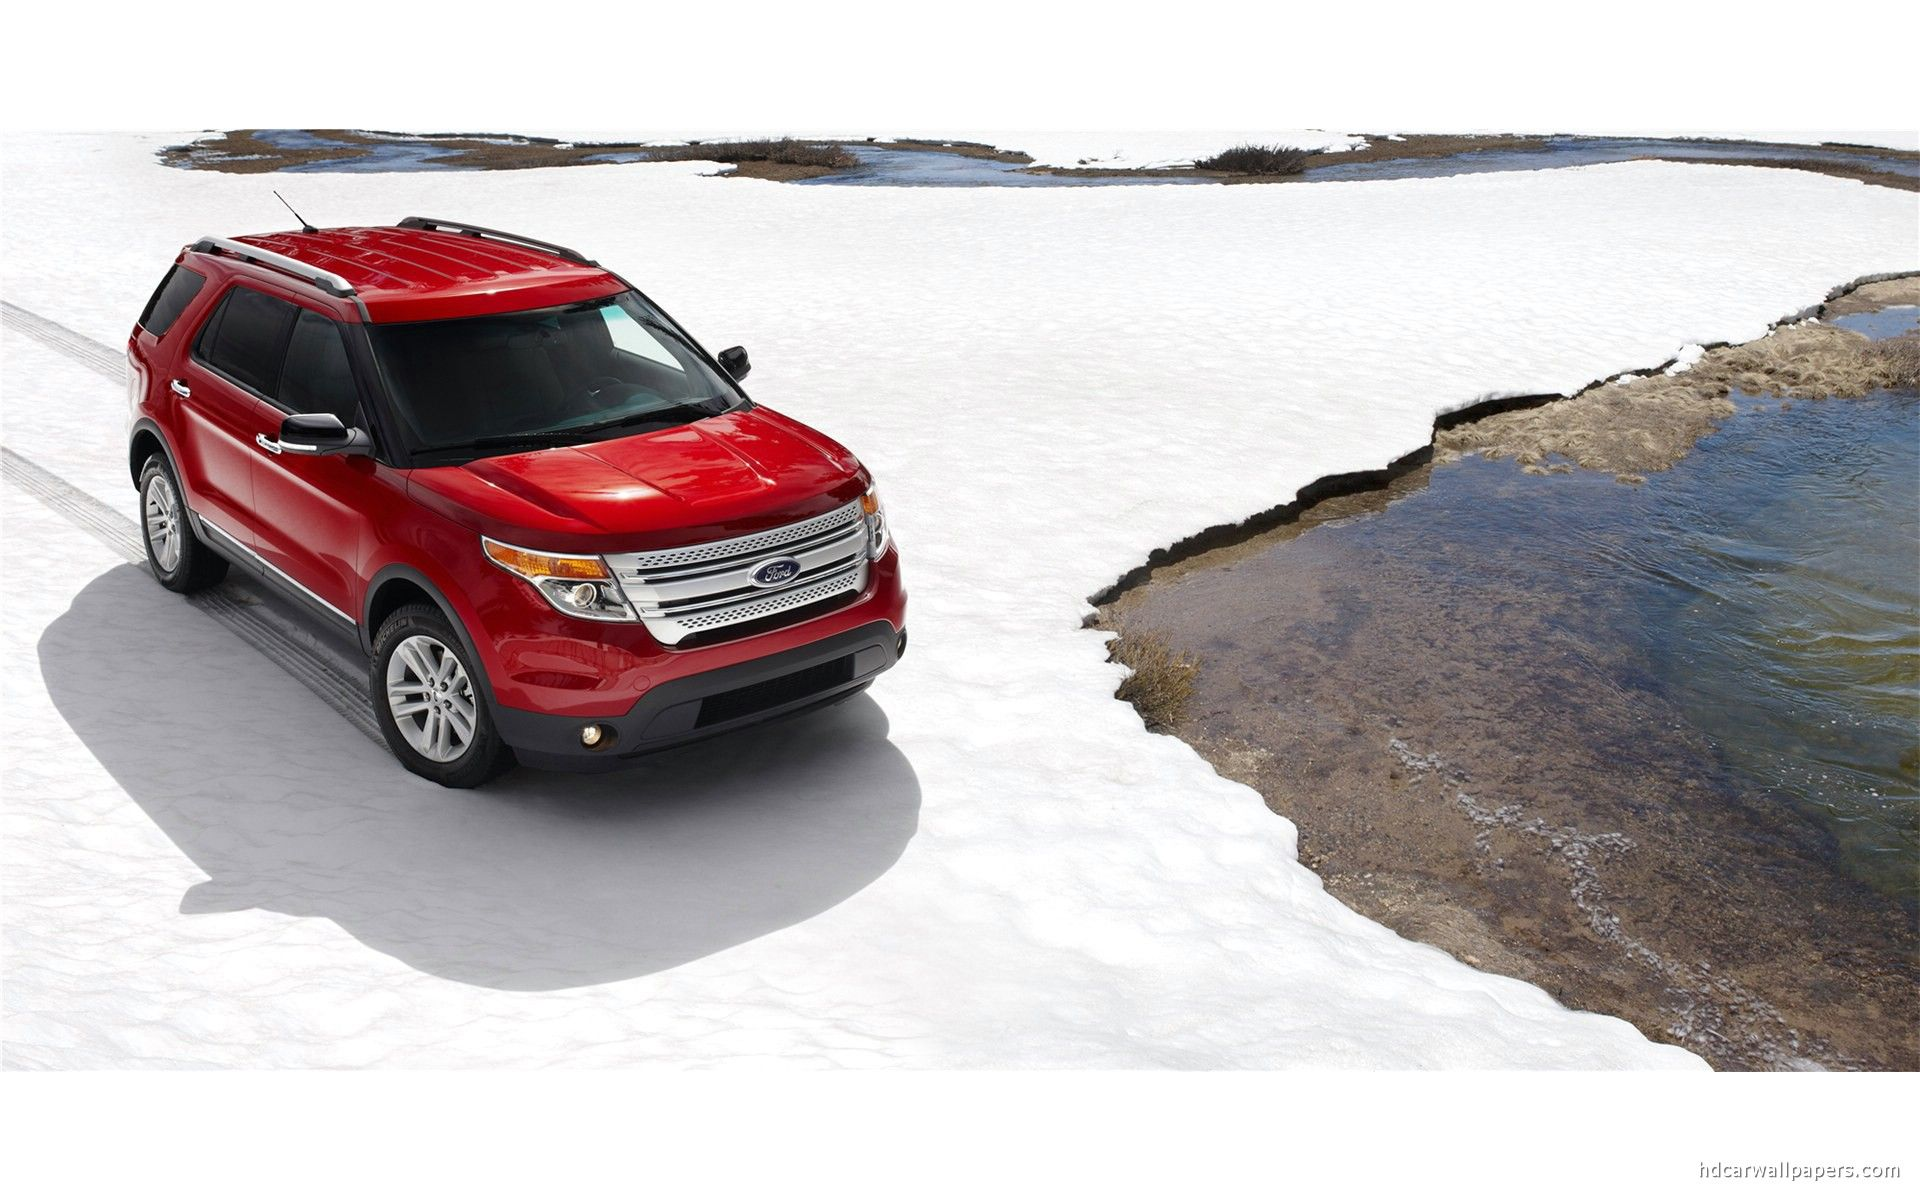 2011 ford explorer 2 hd wallpapers http www hdcarwallpapers in